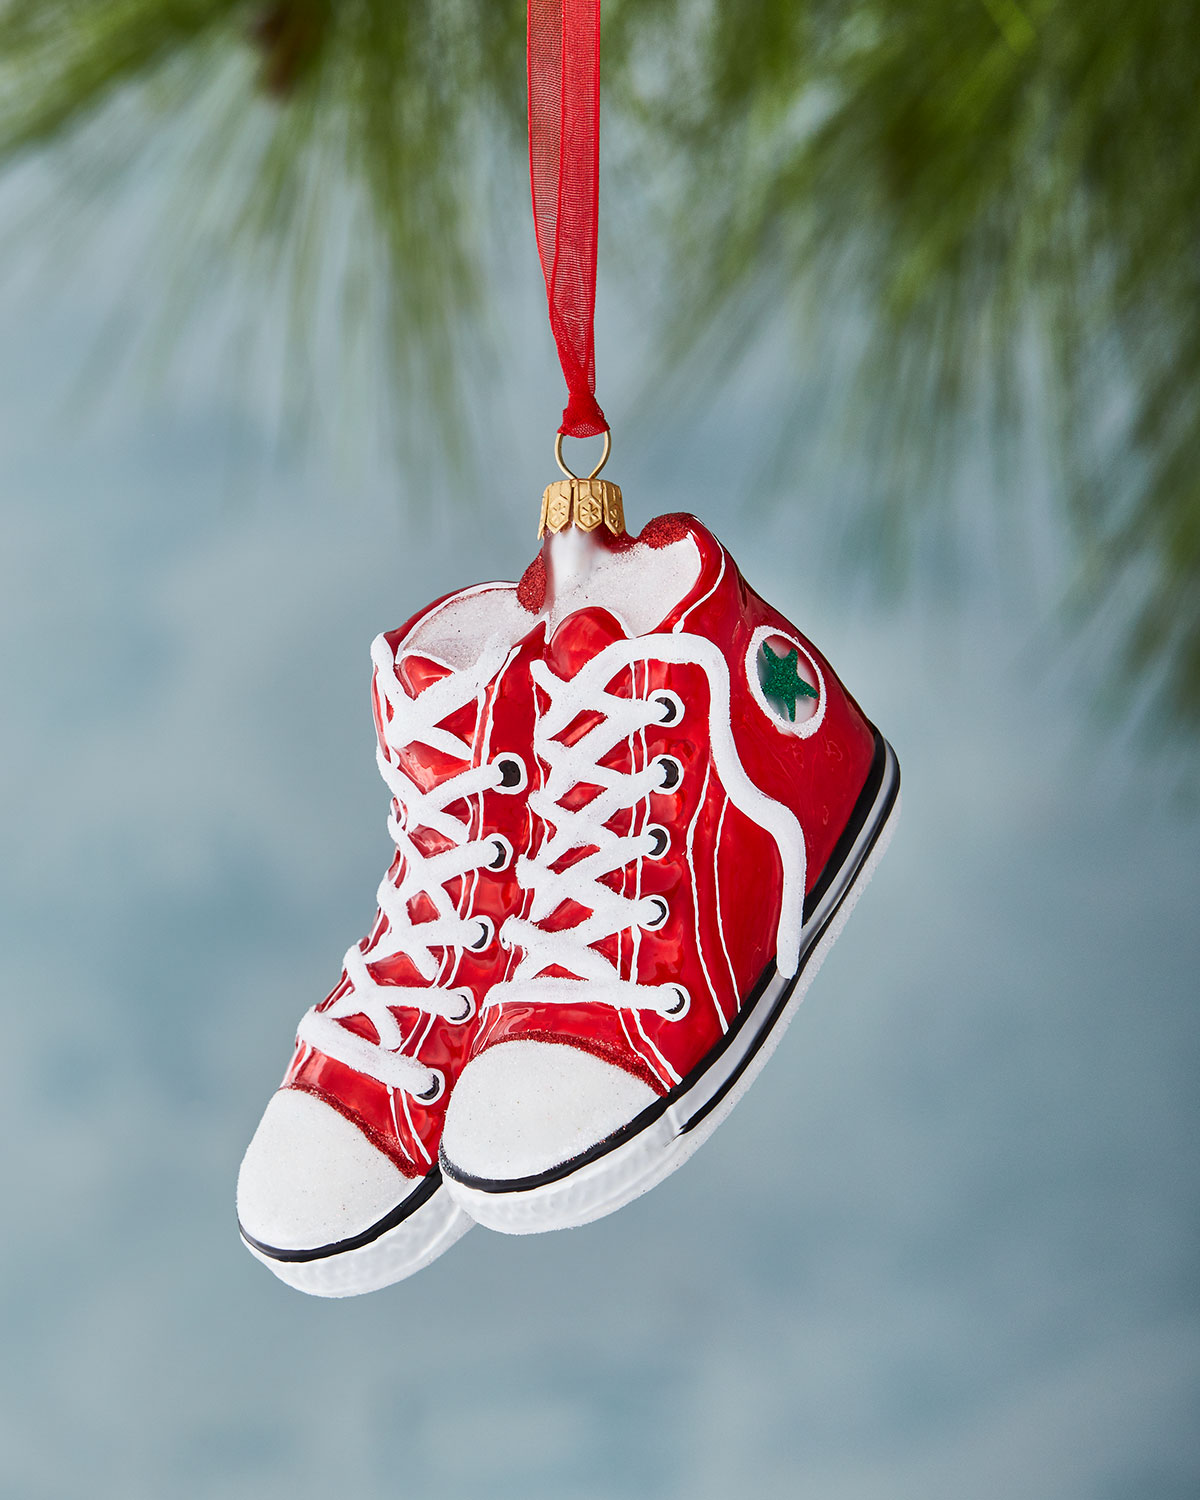 Red High-Top Sneaker Christmas Ornament